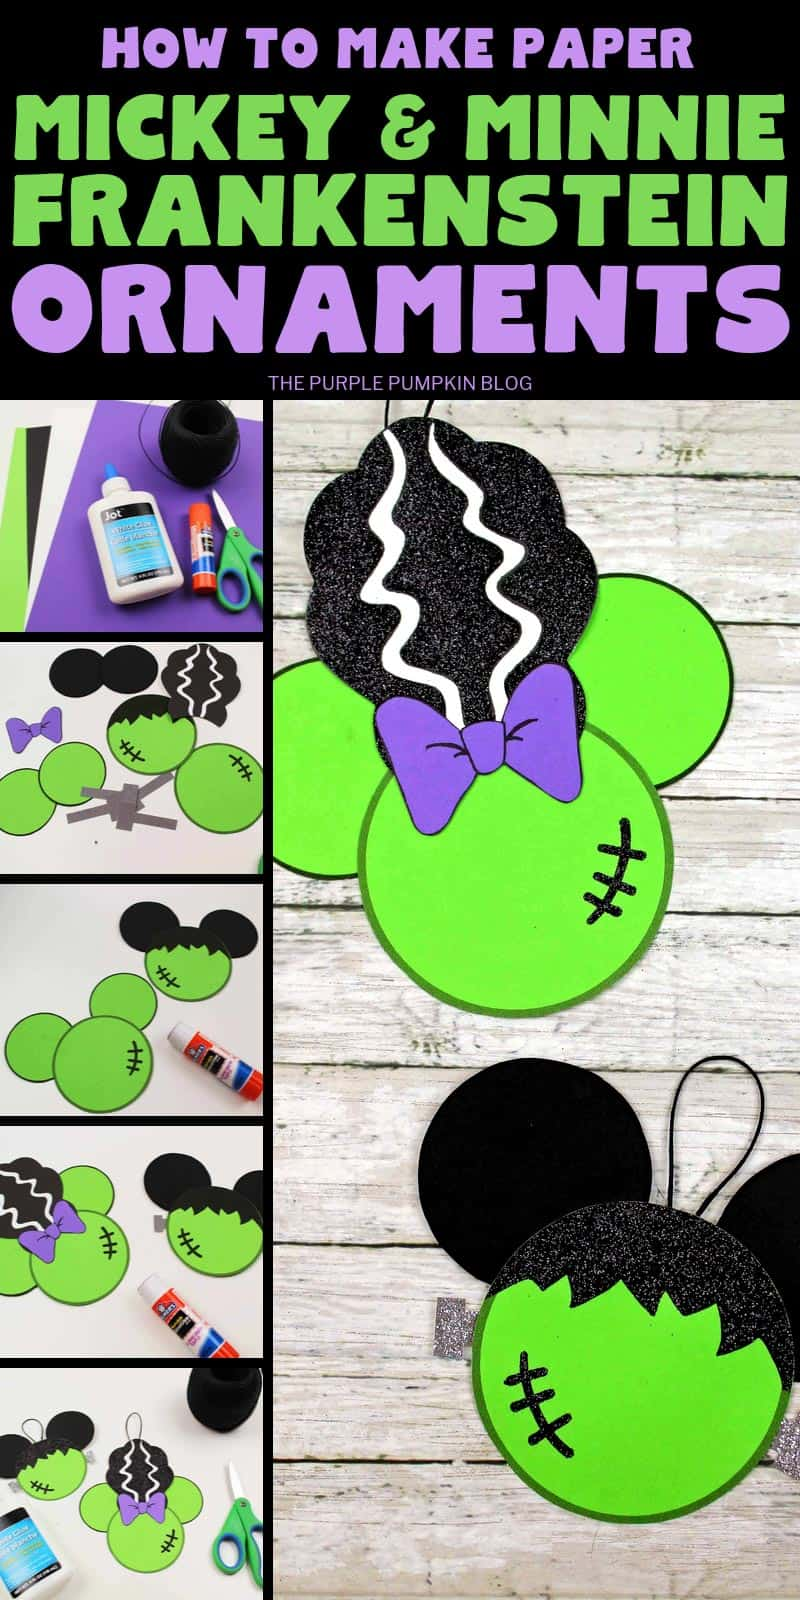 How to make paper Mickey and Minnie Frankenstein ornaments